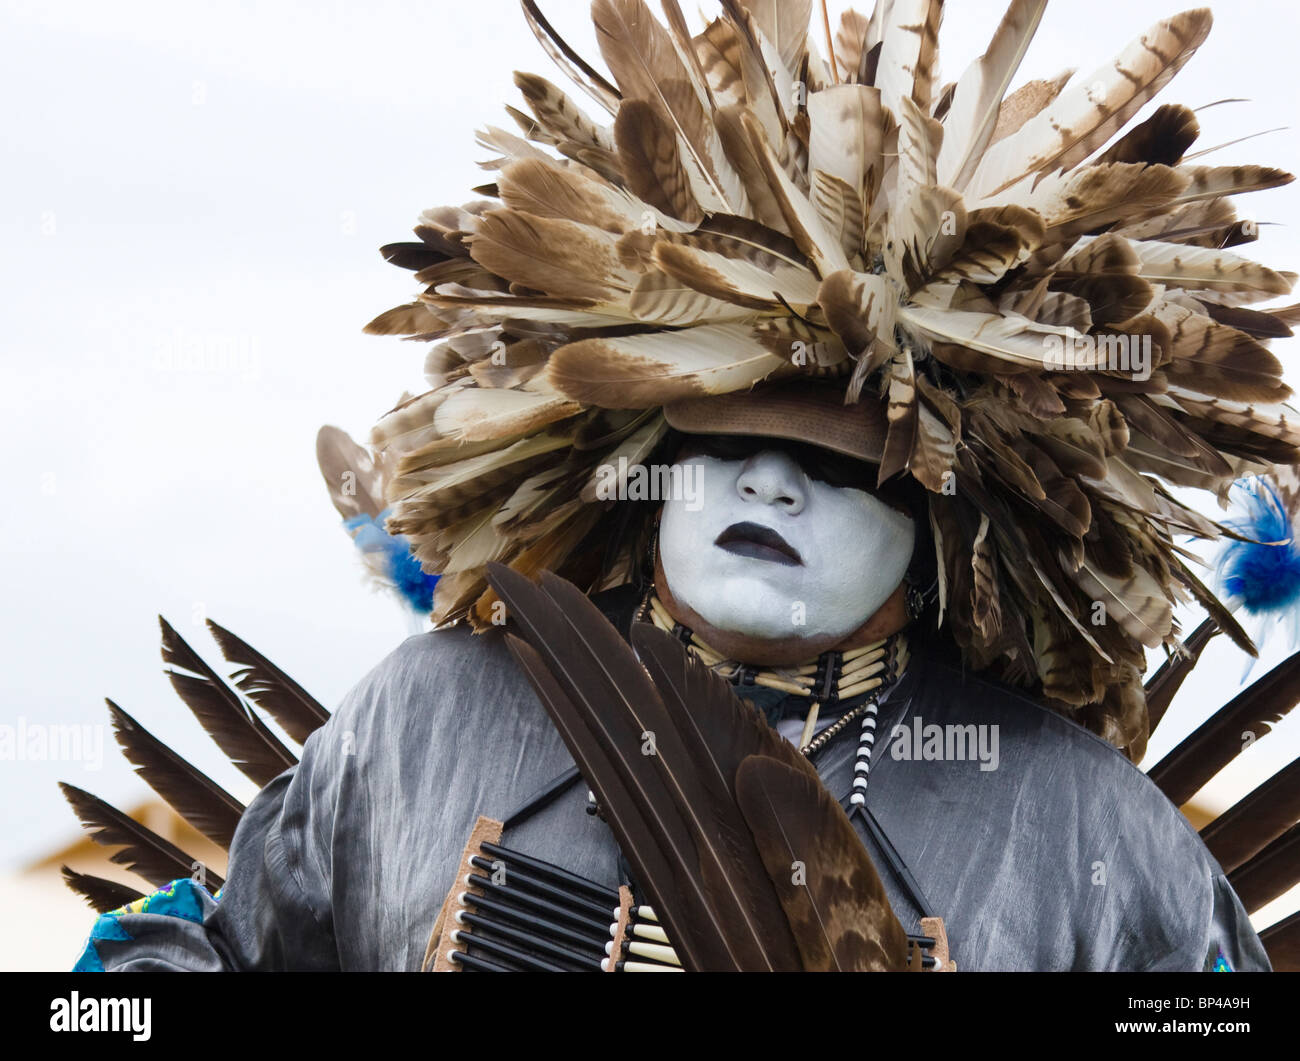 Charles Hankinson (Eagle Tail), a Native American from the Micmac tribe of Canada, dances in full traditional regalia. - Stock Image